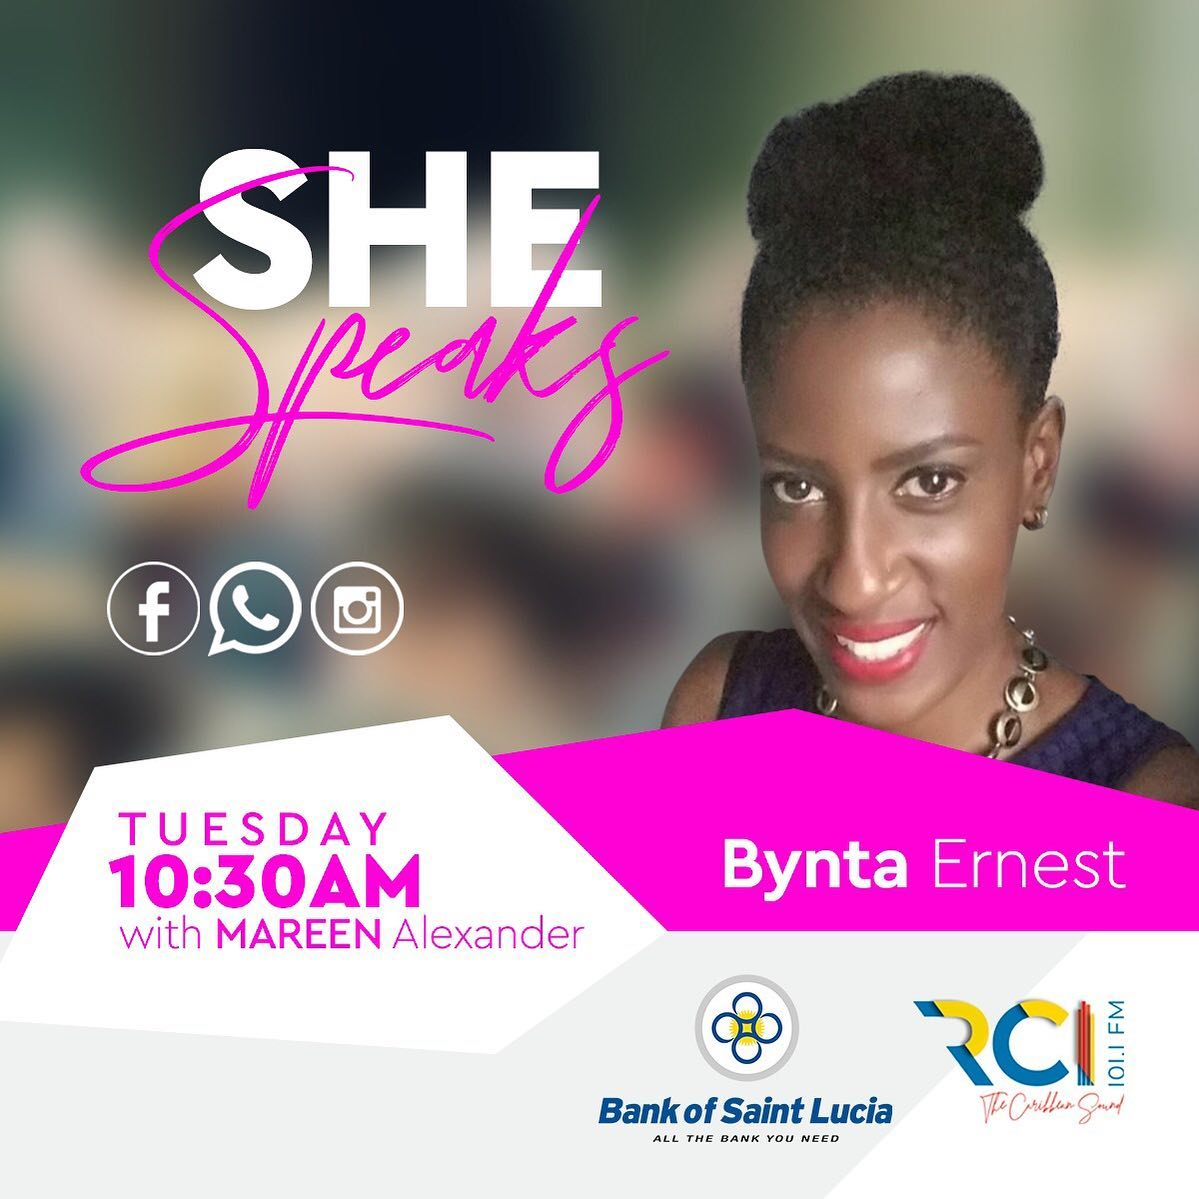 RCI She Speaks - Bynta Ernest